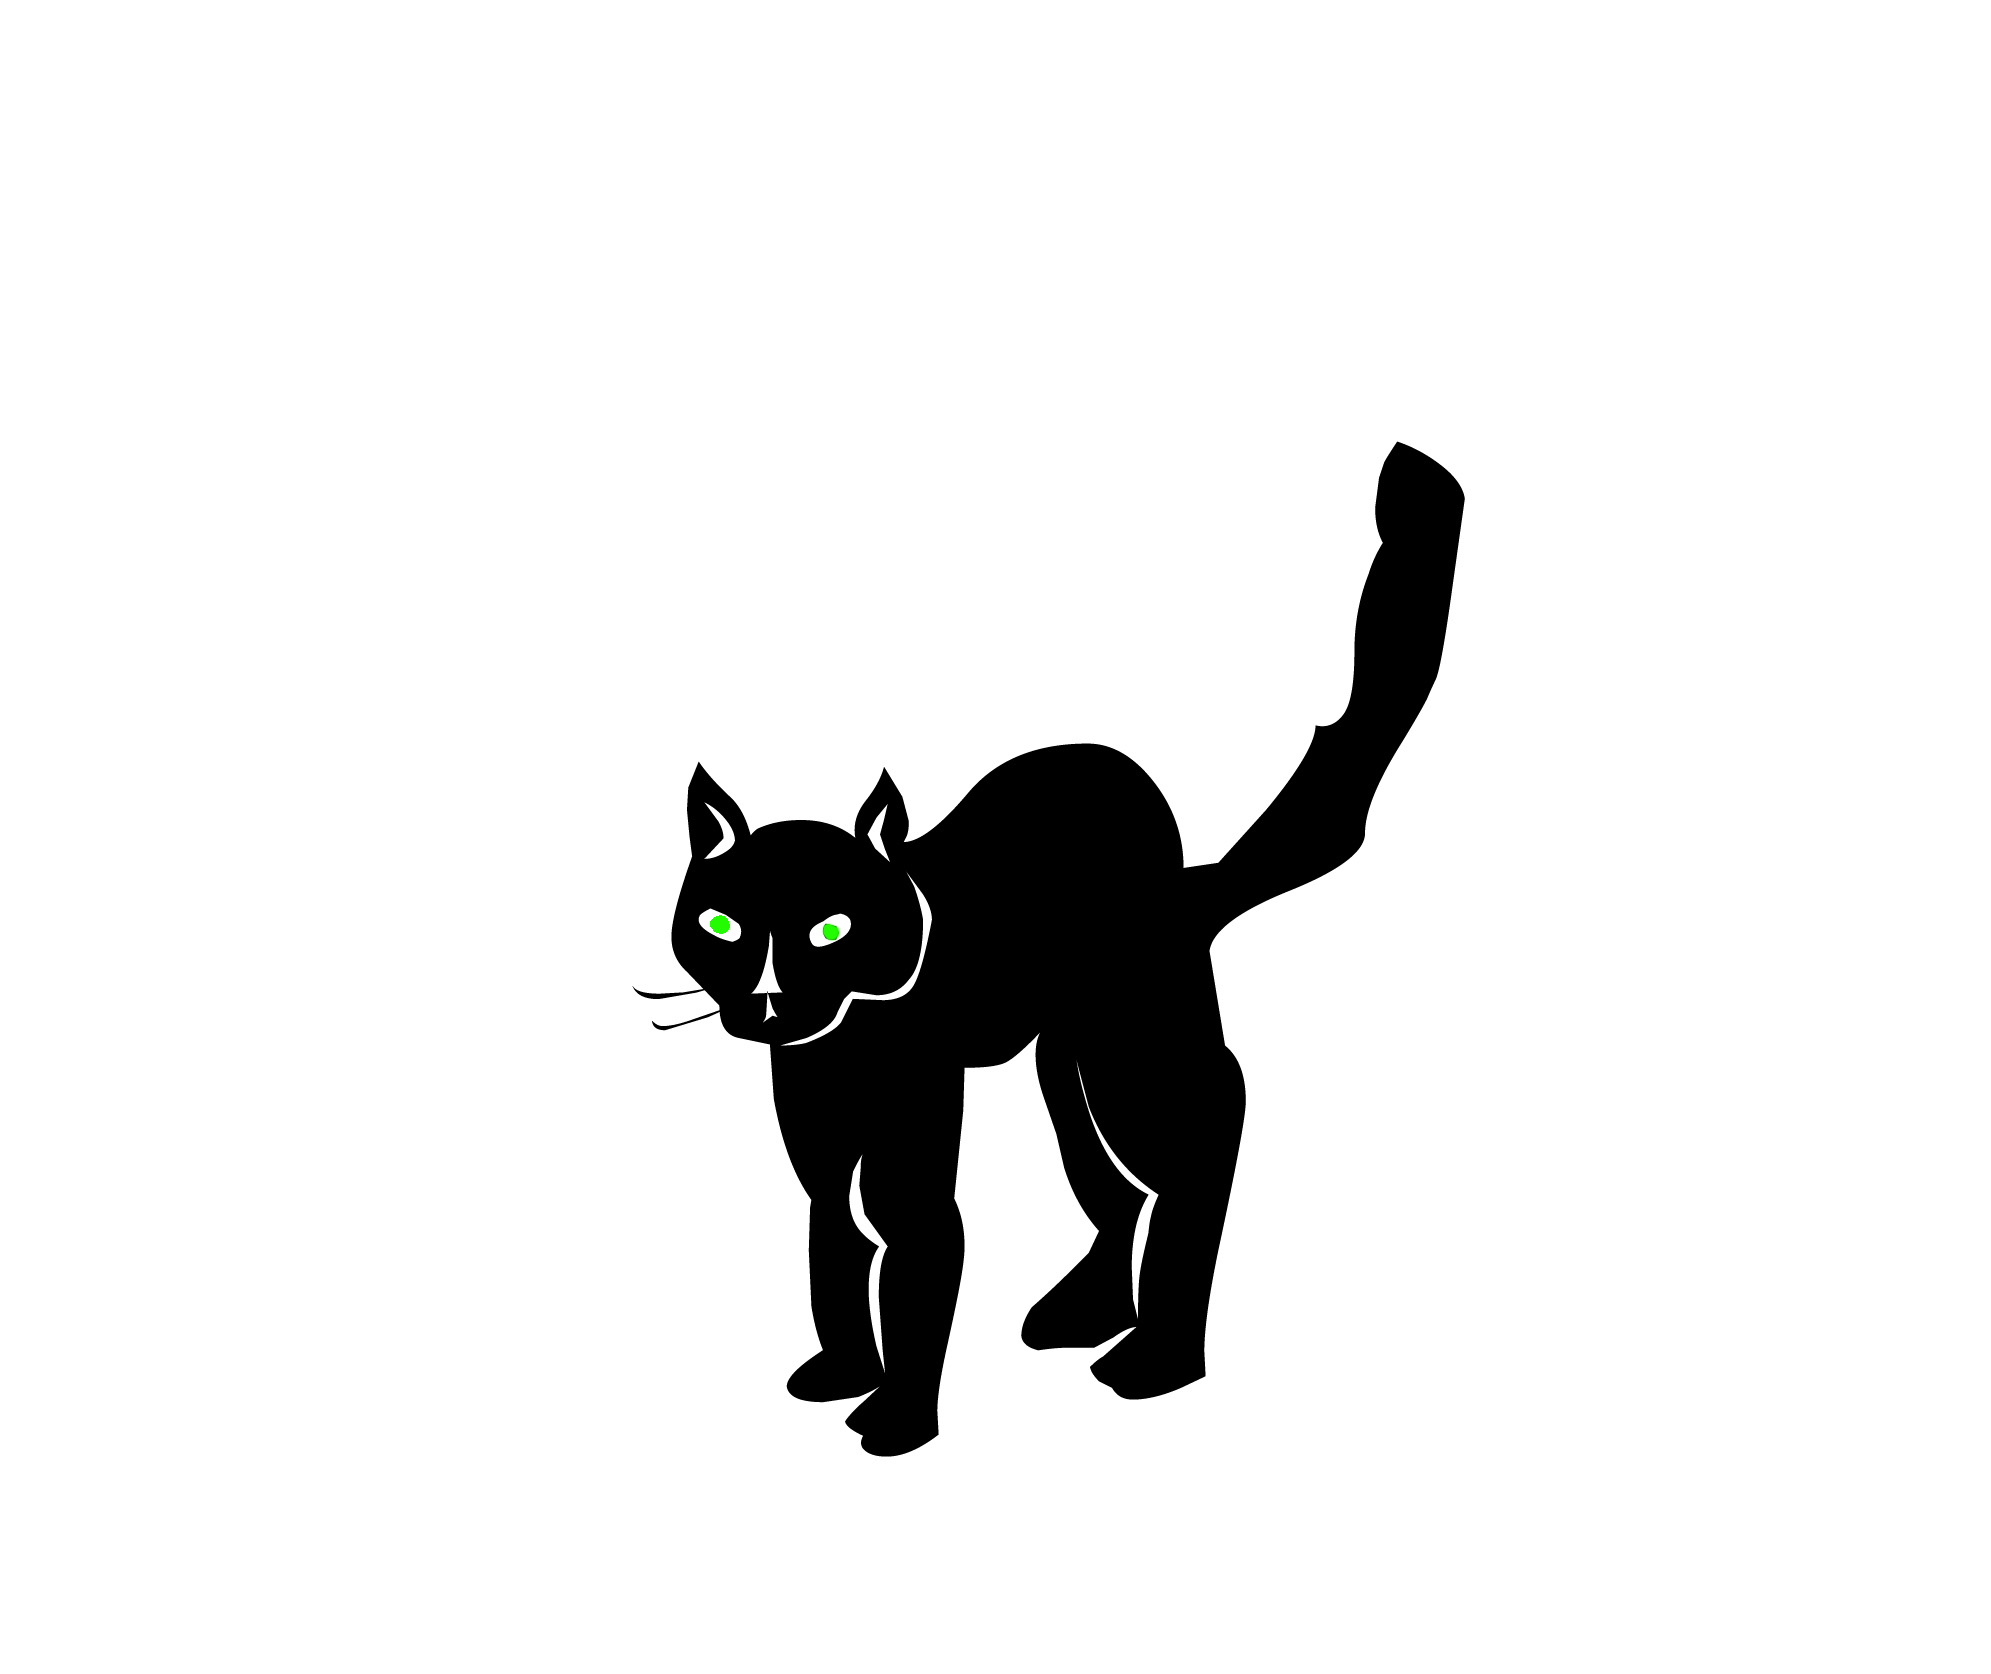 black cat Cat clip art black and white free clipart images jpeg 2